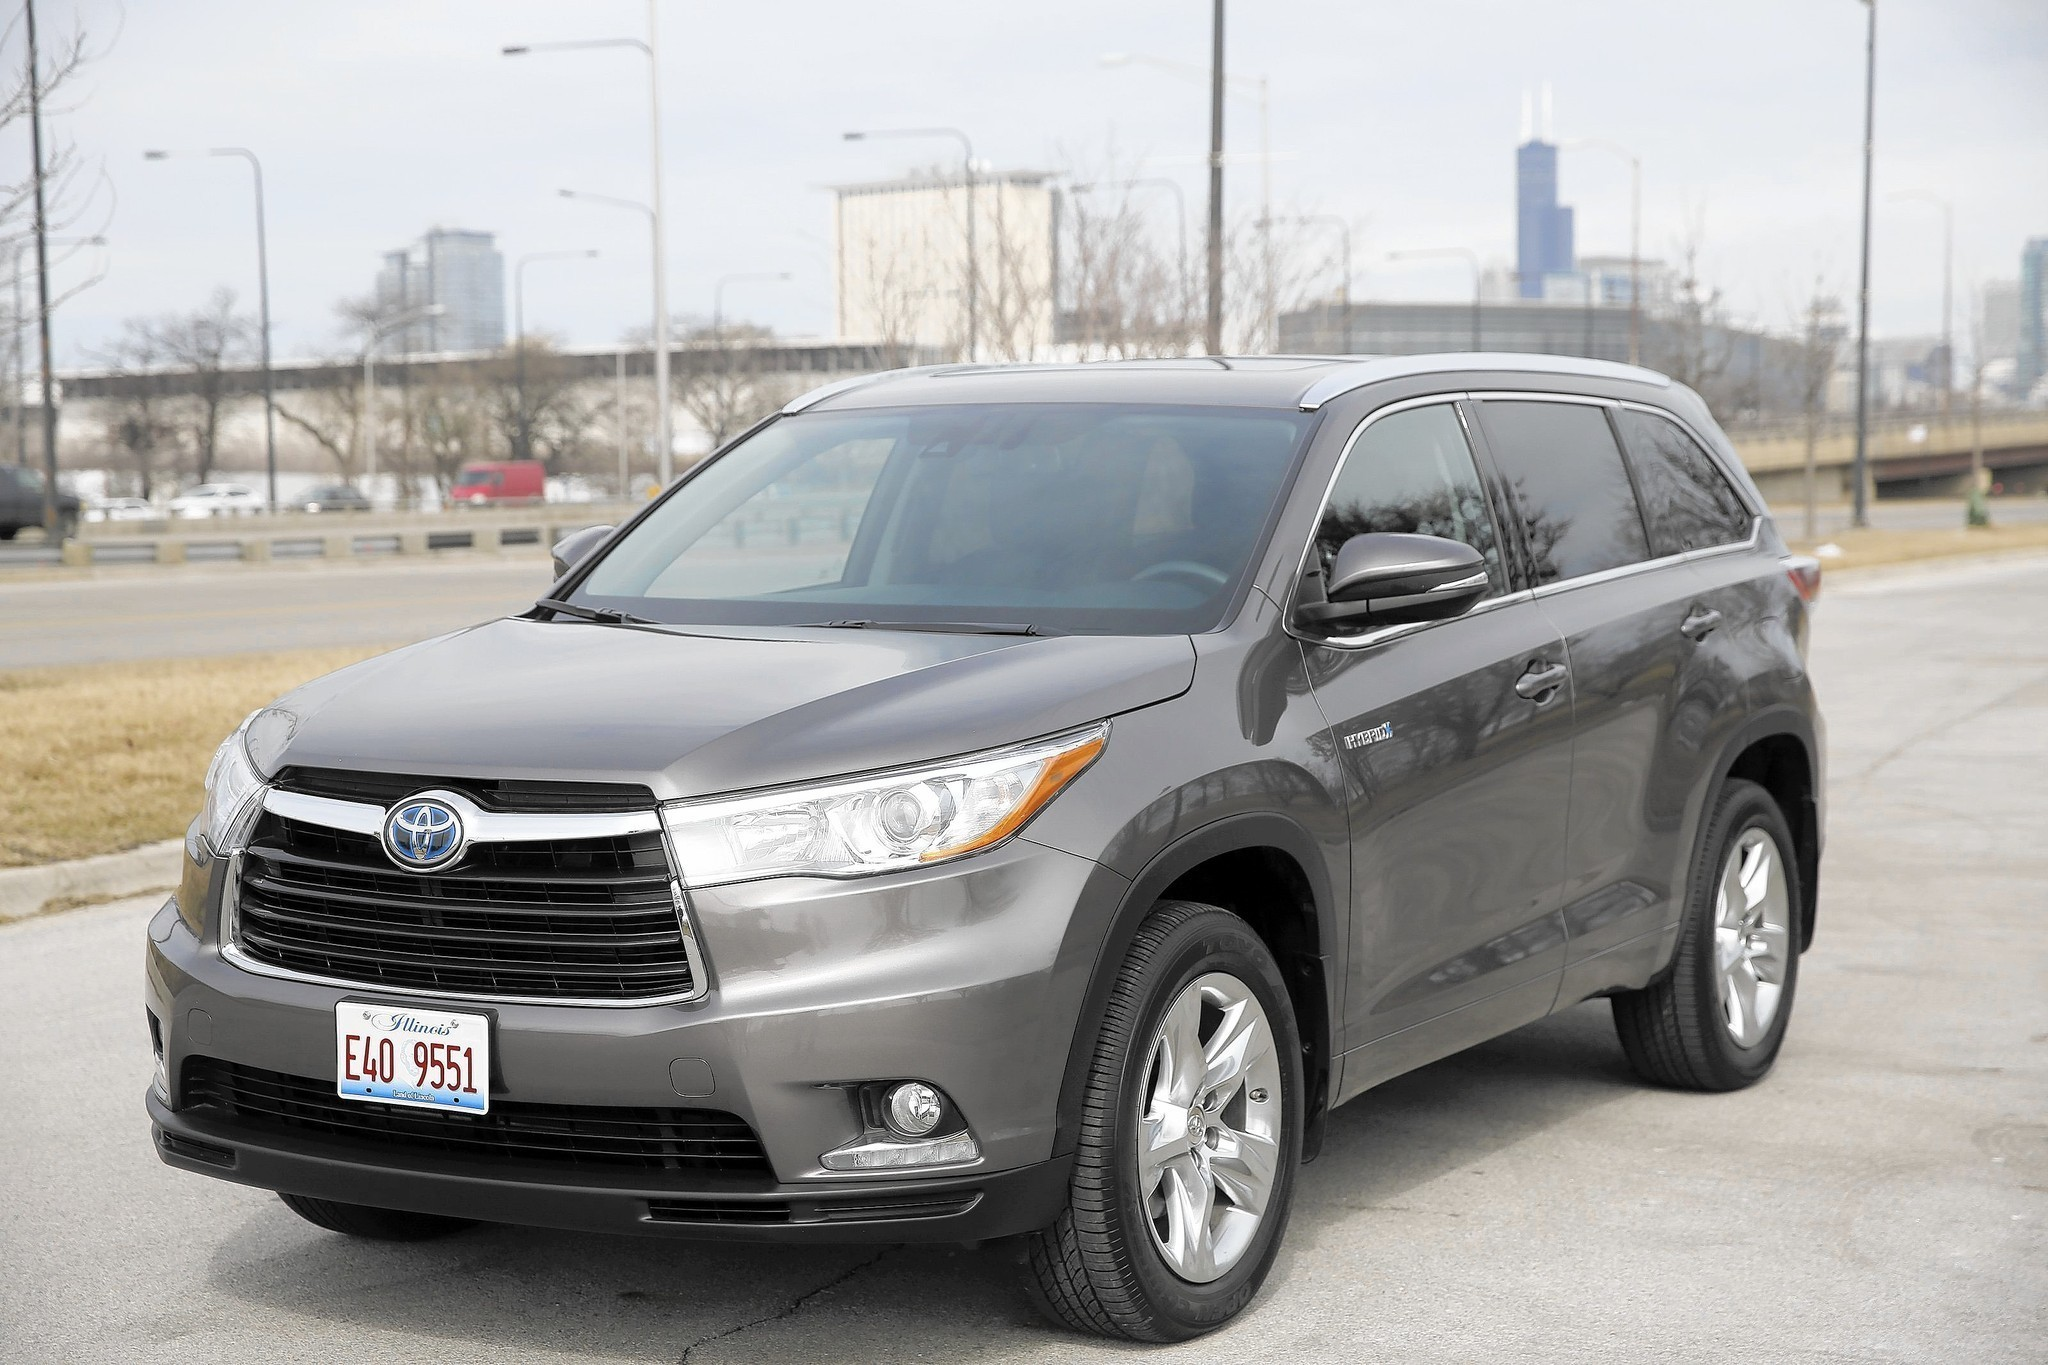 2015 toyota highlander hybrid skimps on fuel but nothing else chicago tribune